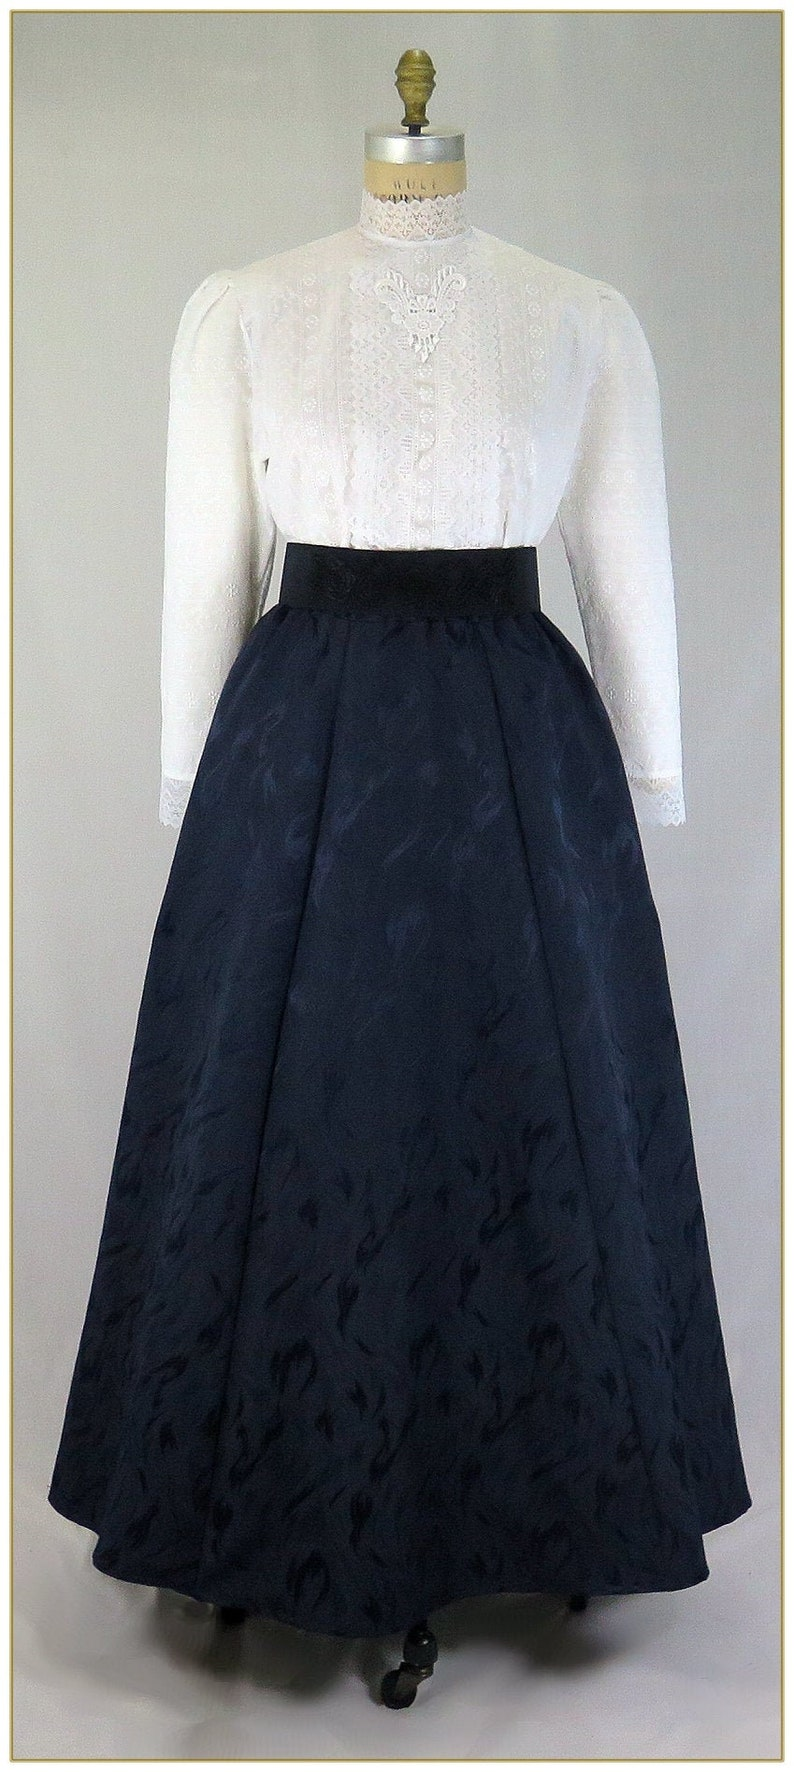 Steampunk Costume Essentials for Women Victorian Midnight Navy Blue Jacquard Skirt $68.00 AT vintagedancer.com